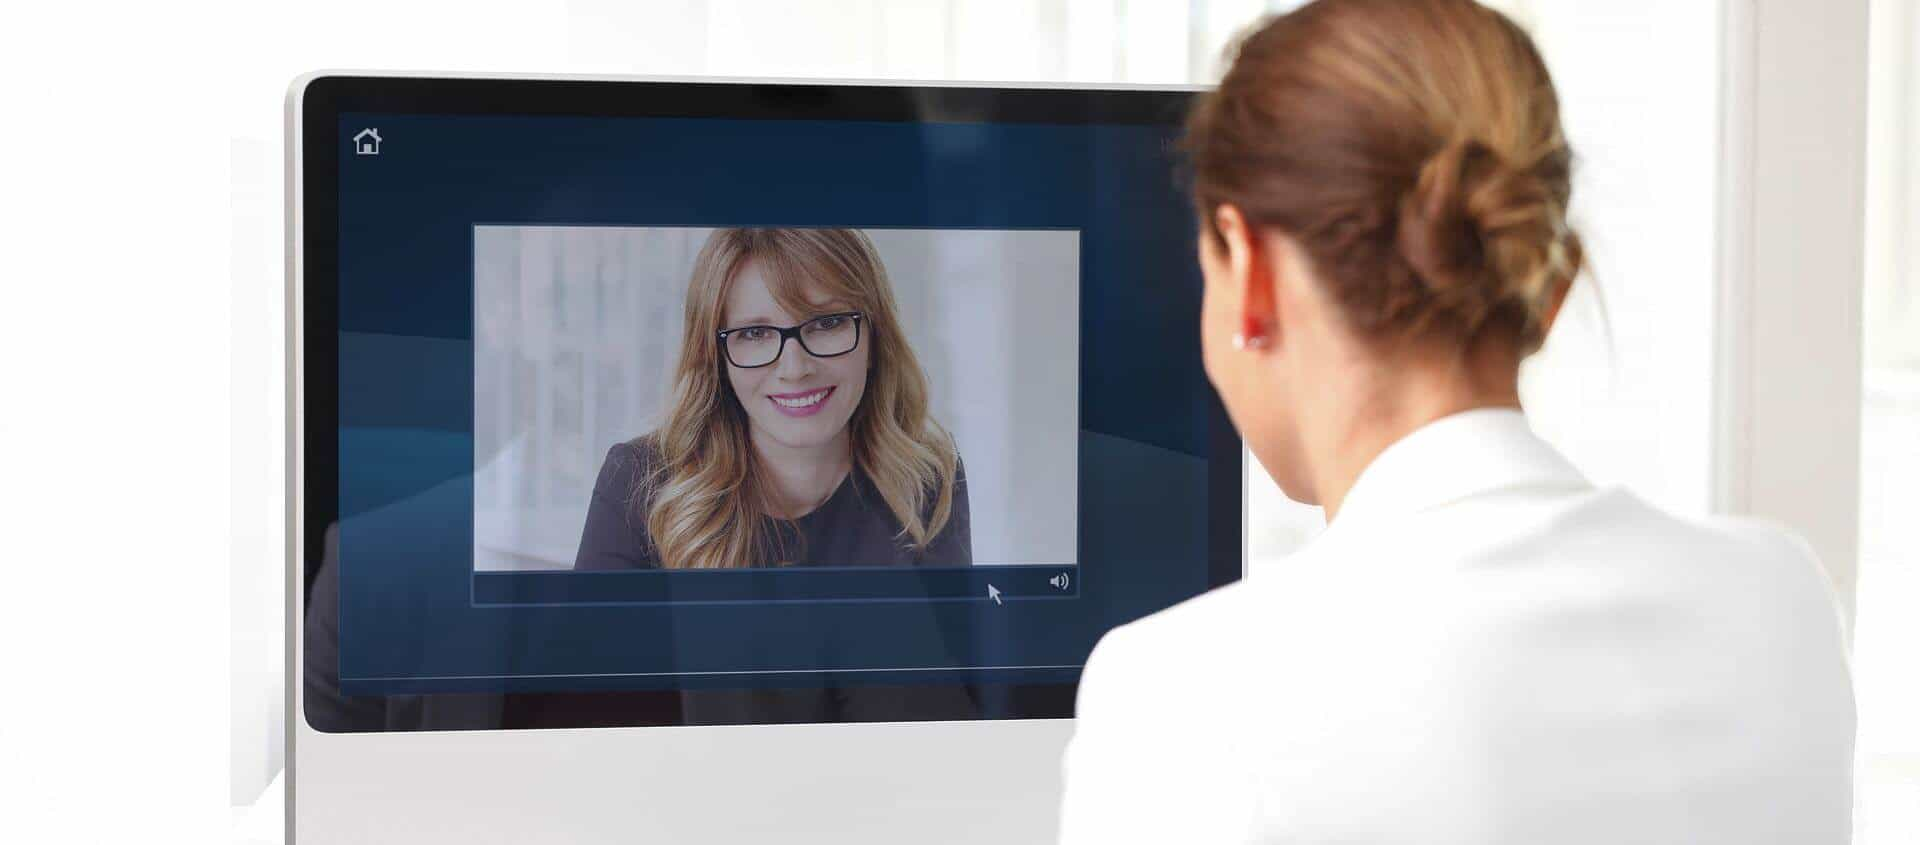 Inspire your customers with instant video communication and screen sharing